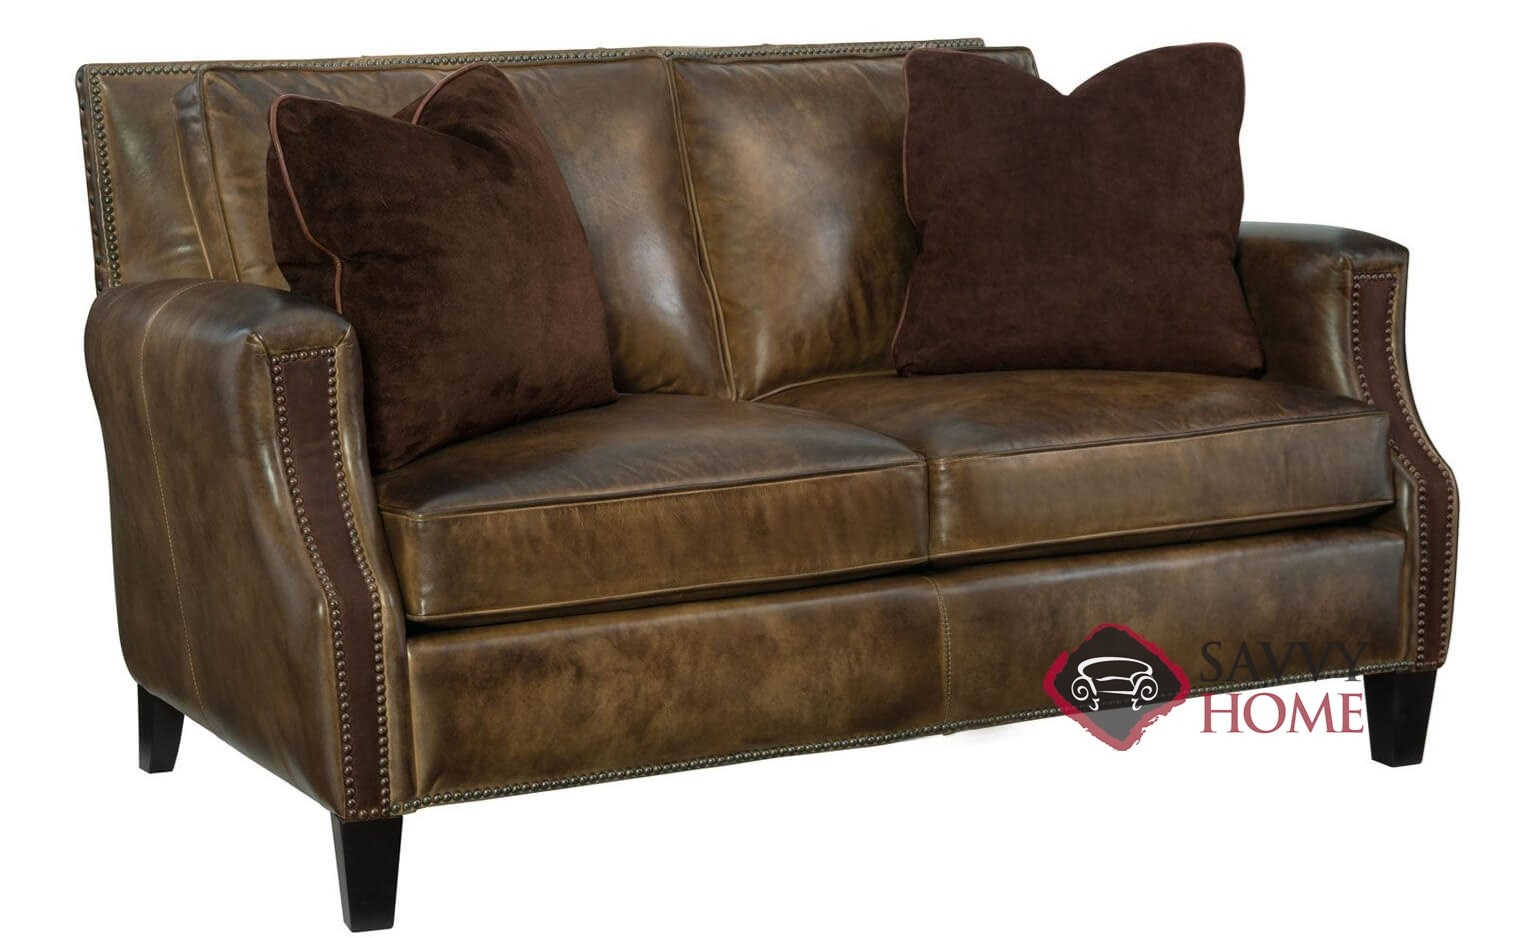 Surprising Quick Ship Normandy By Bernhardt Leather Stationary Loveseat In By Bernhardt With Fast Shipping Savvyhomestore Com Home Remodeling Inspirations Basidirectenergyitoicom